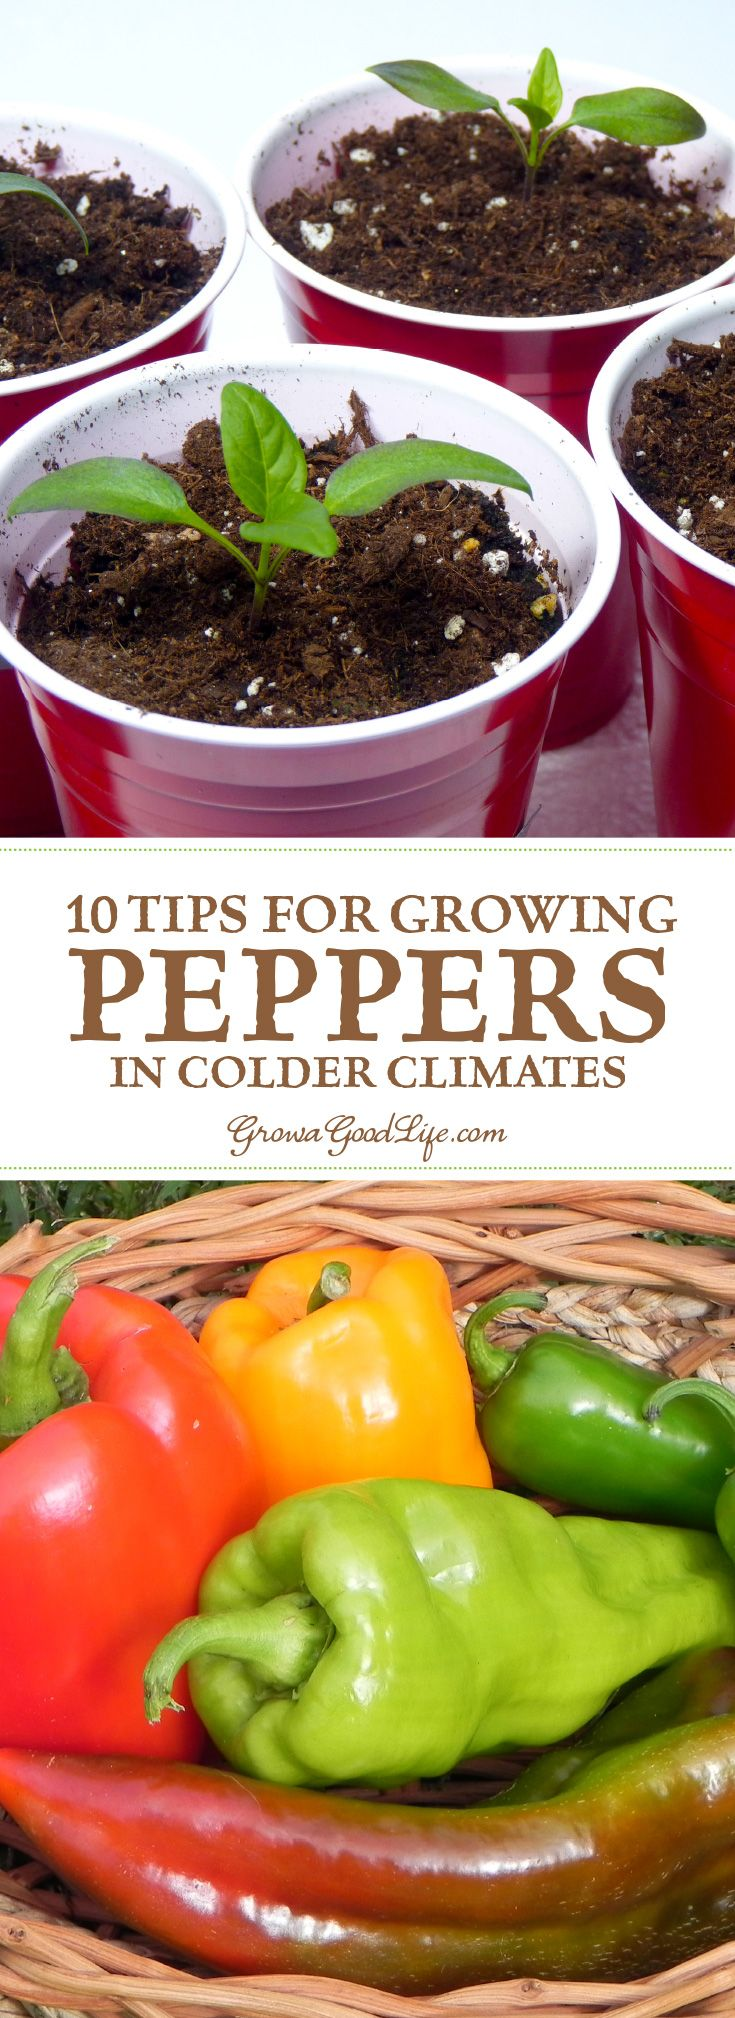 Growing peppers is possible even if you are in cooler climates. The key is to select varieties that are adapted to colder temperatures with early maturity dates, so they grow and ripen before the first fall frosts kills the plant.